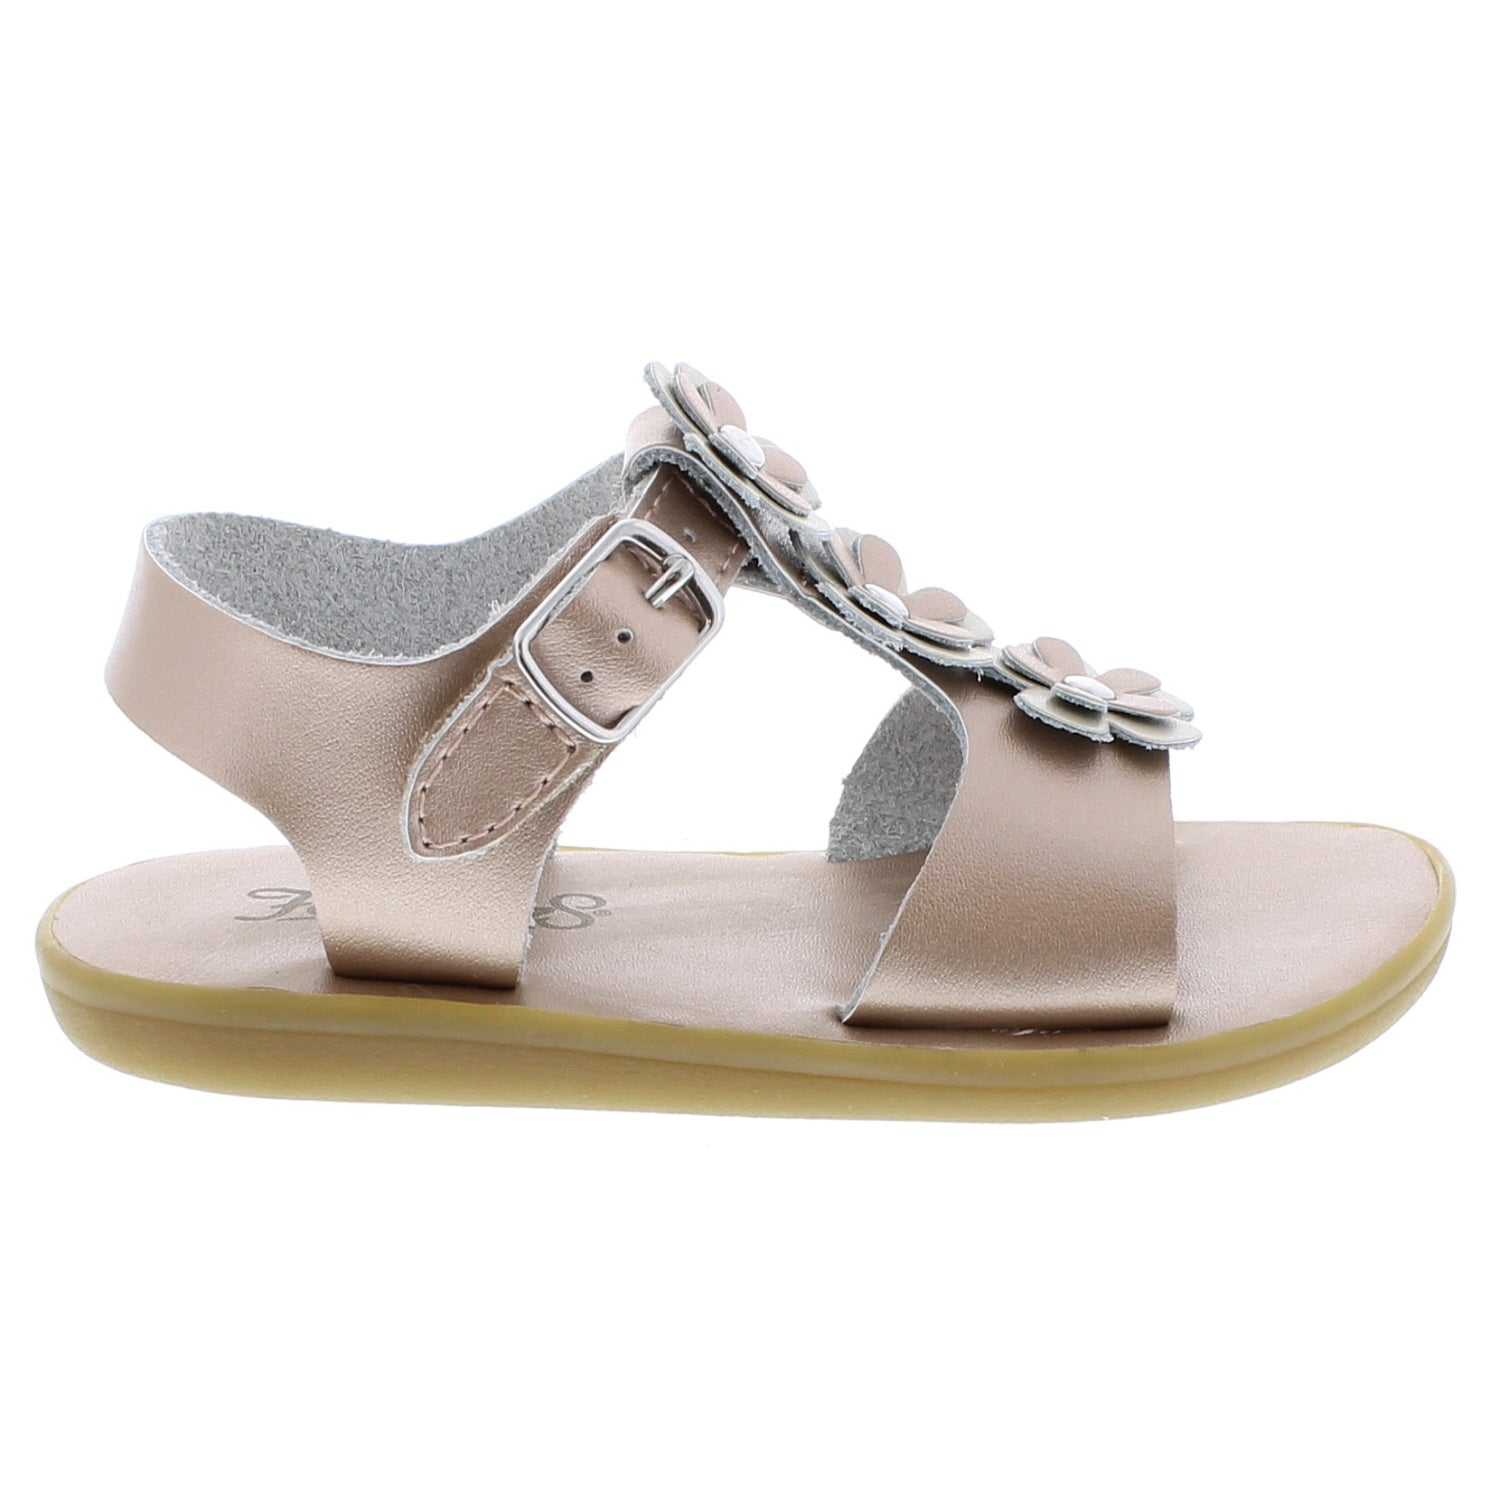 Jasmine - Rose Gold - FINAL SALE by Footmates - Ponseti's Shoes